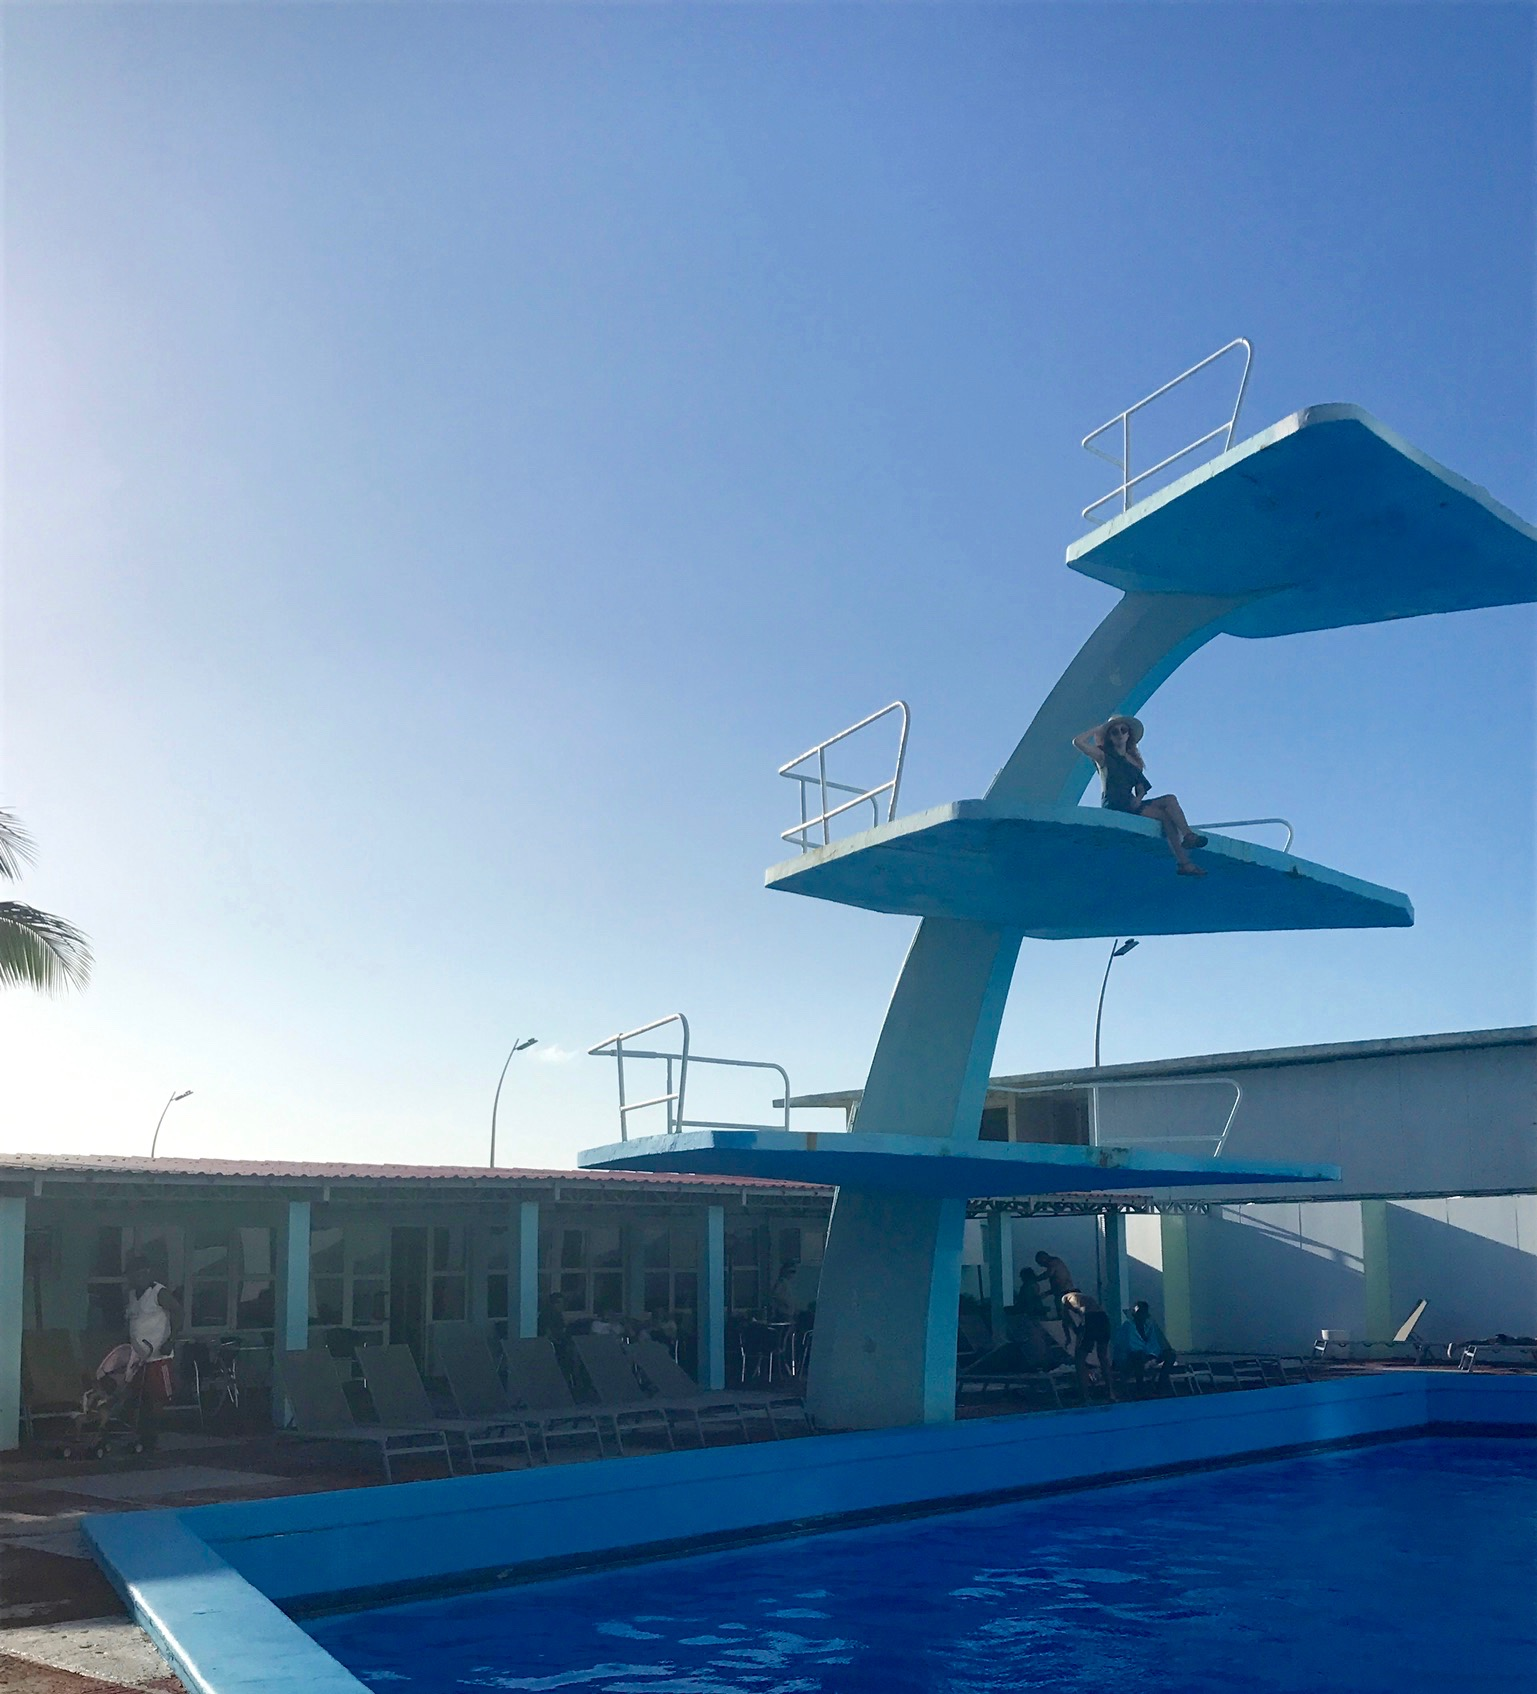 Even if you don't stay in a hotel, you can still take advantage of their facilities. Find this diving board at the Hotel Riviera, which hasn't been updated since the 1950s!